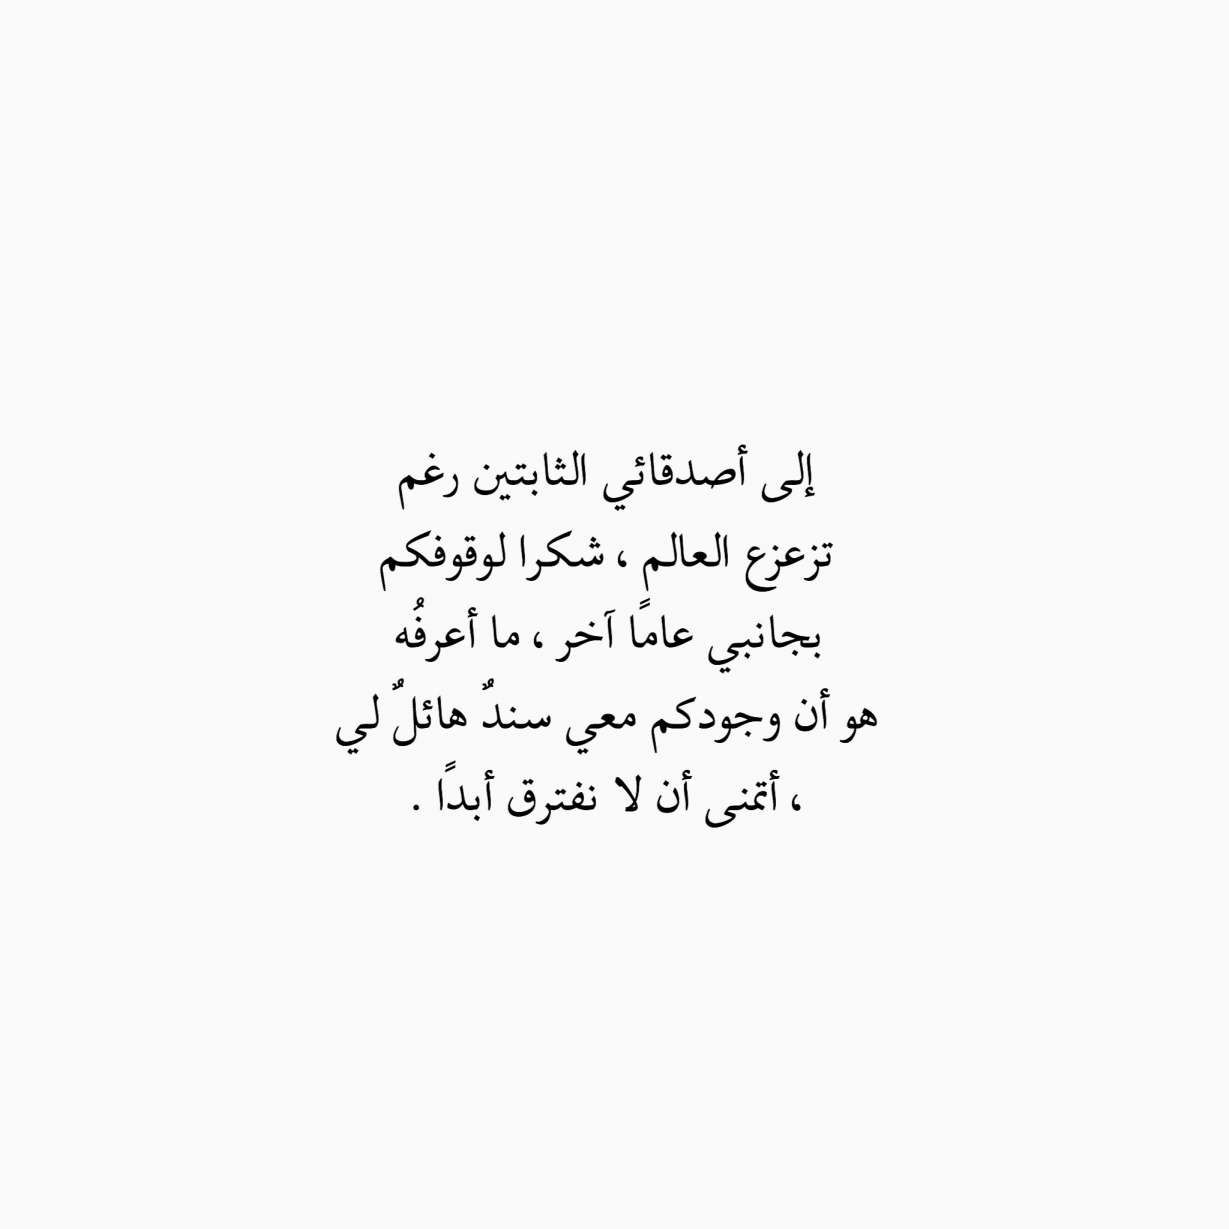 16 Arabic Quotes About Friendship Words Quotes Friendship Quotes Friends Quotes